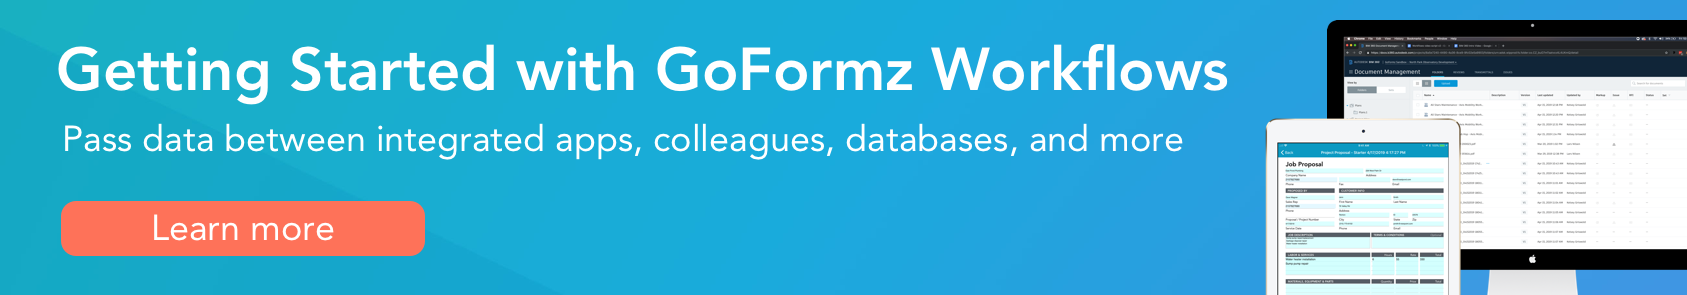 Banner text: Getting started with GoFormz worfklows